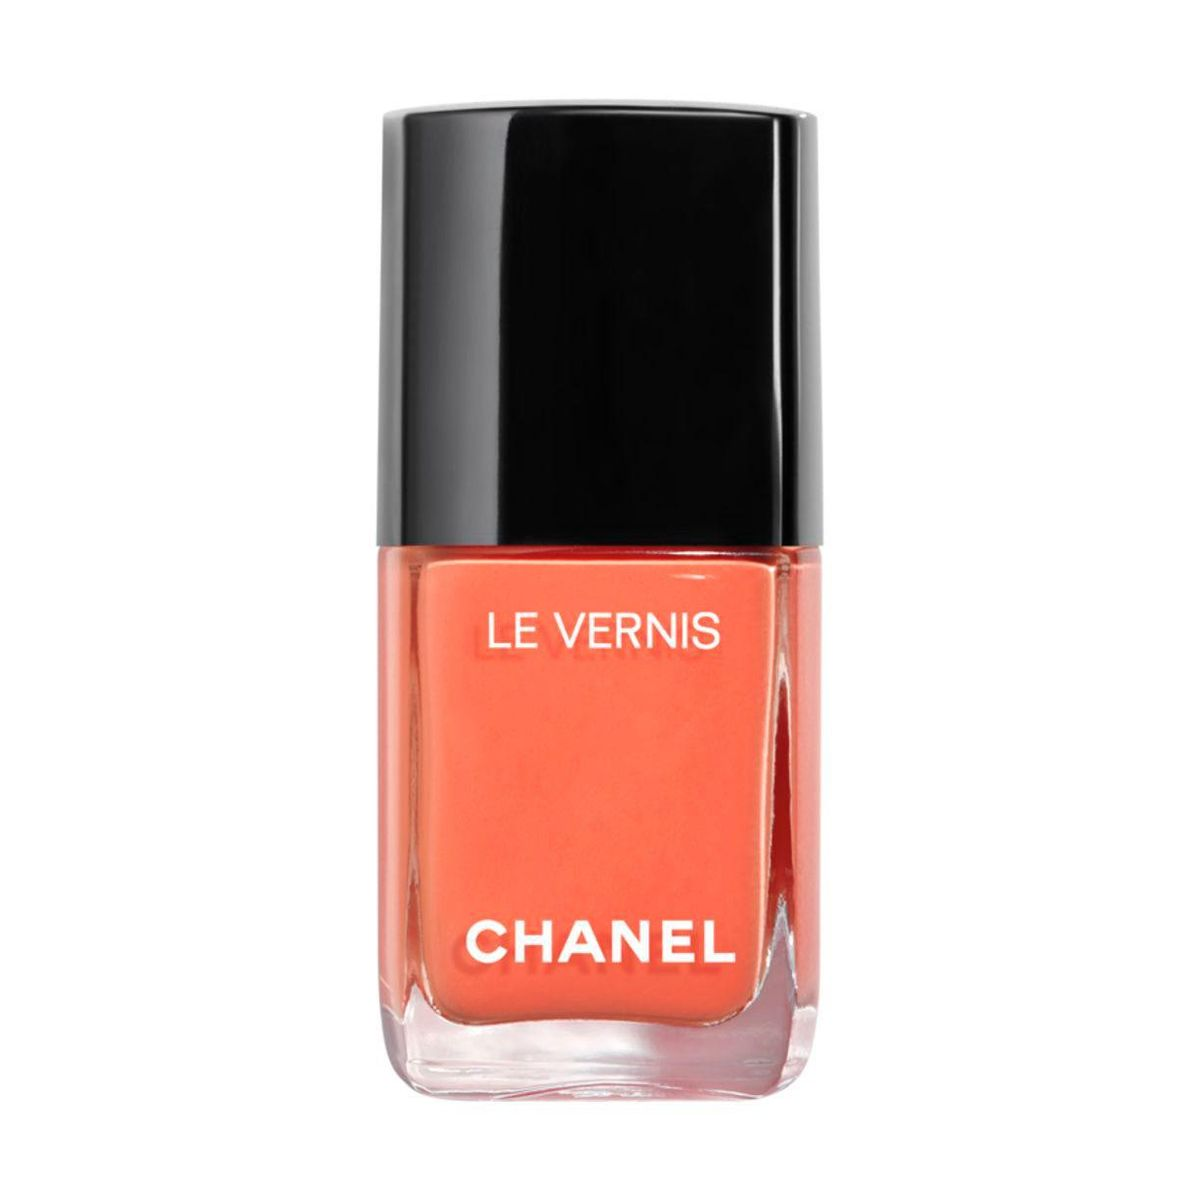 Le Vernis in Cruise